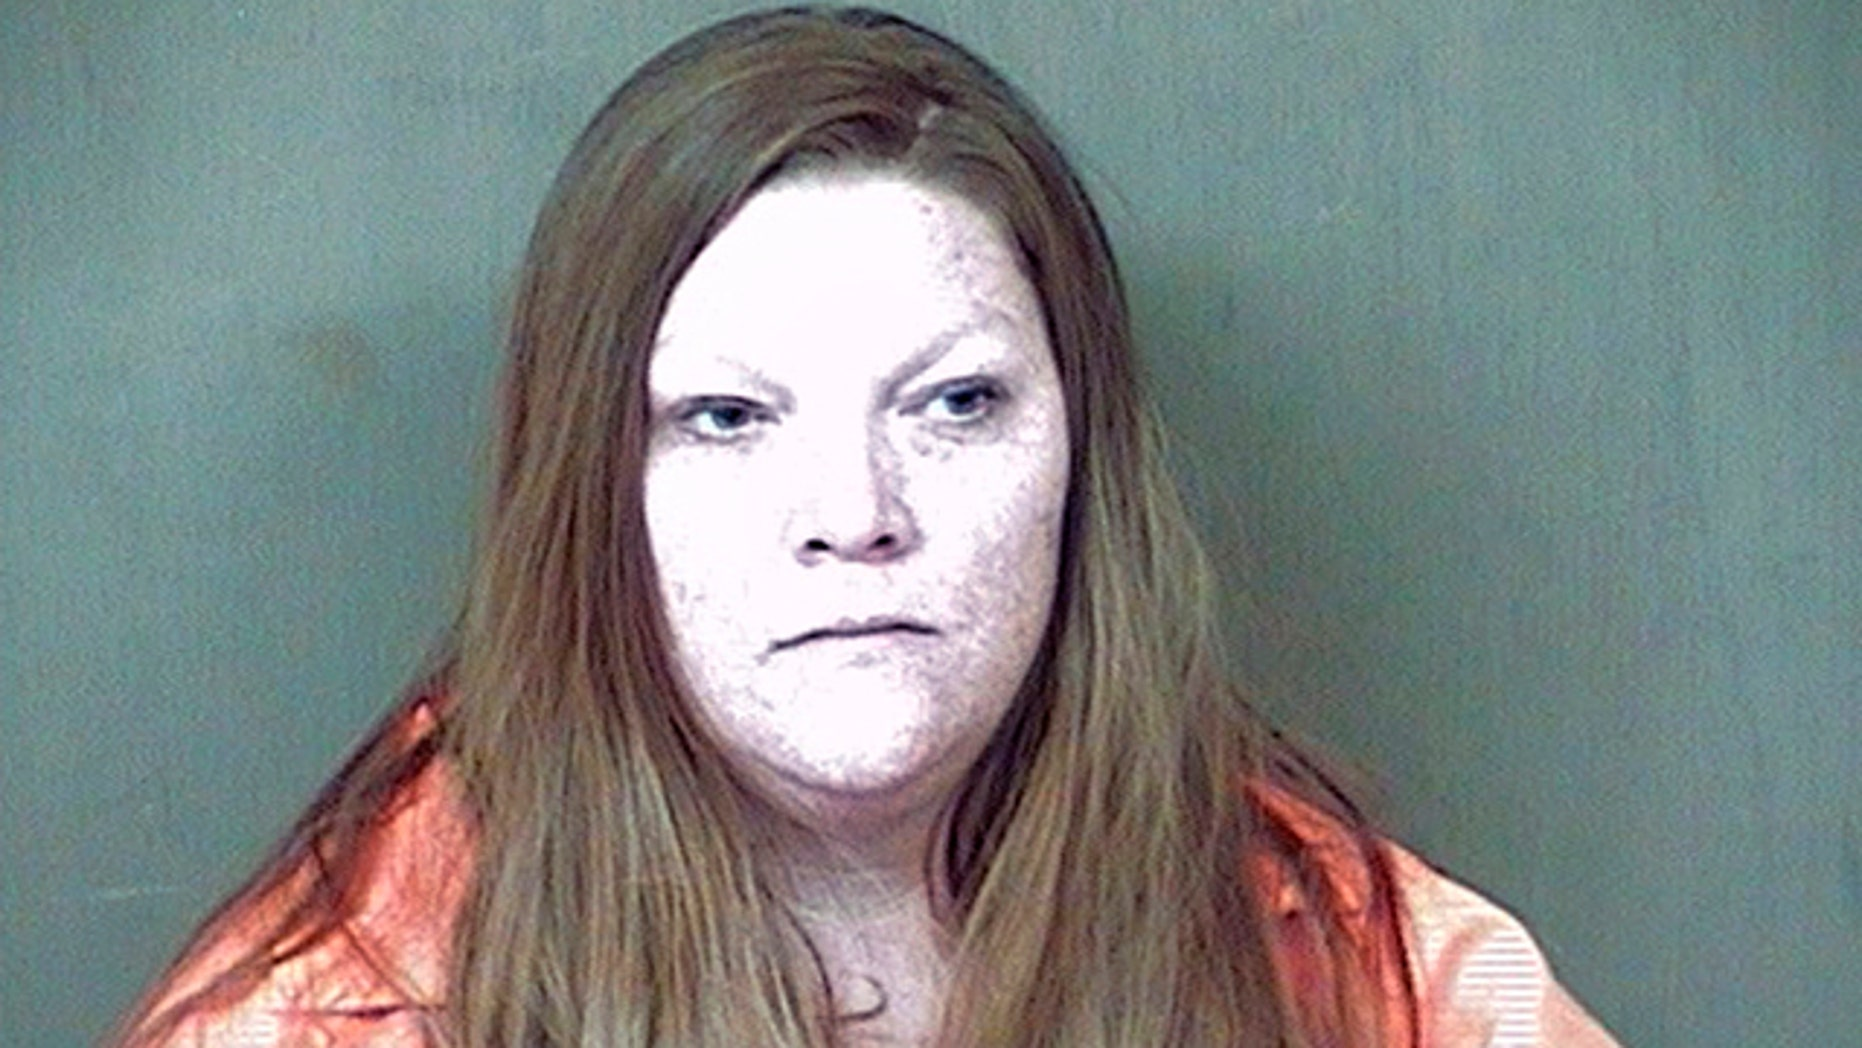 This undated photo provided by the Hancock County Sheriff's Department on Thursday, Jan. 13, 2011, shows Brandi Favre.